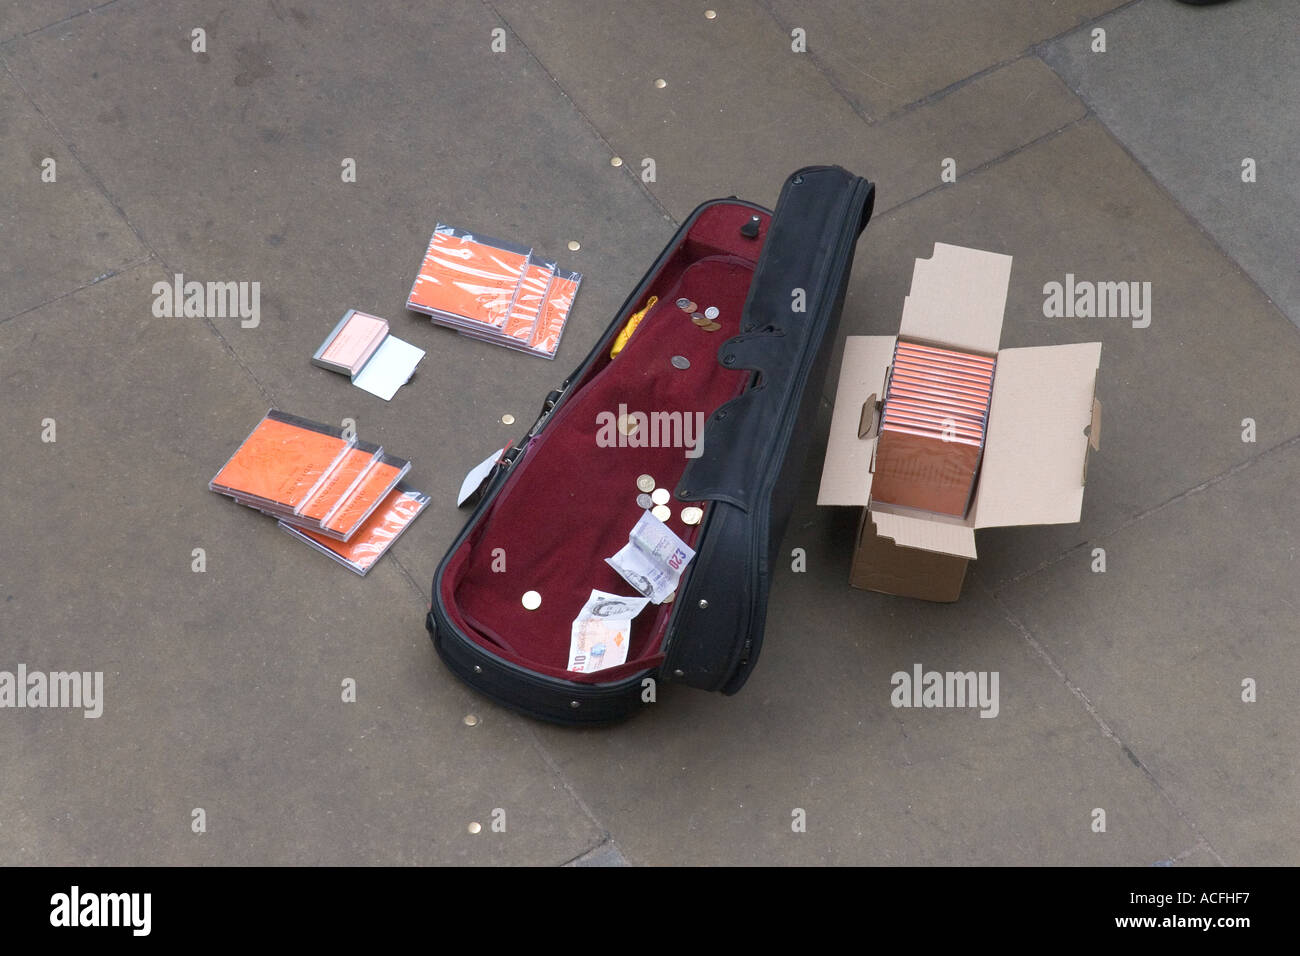 Violin case openon the ground with money earned from busking and boxes of cd s for sale beside it - Stock Image